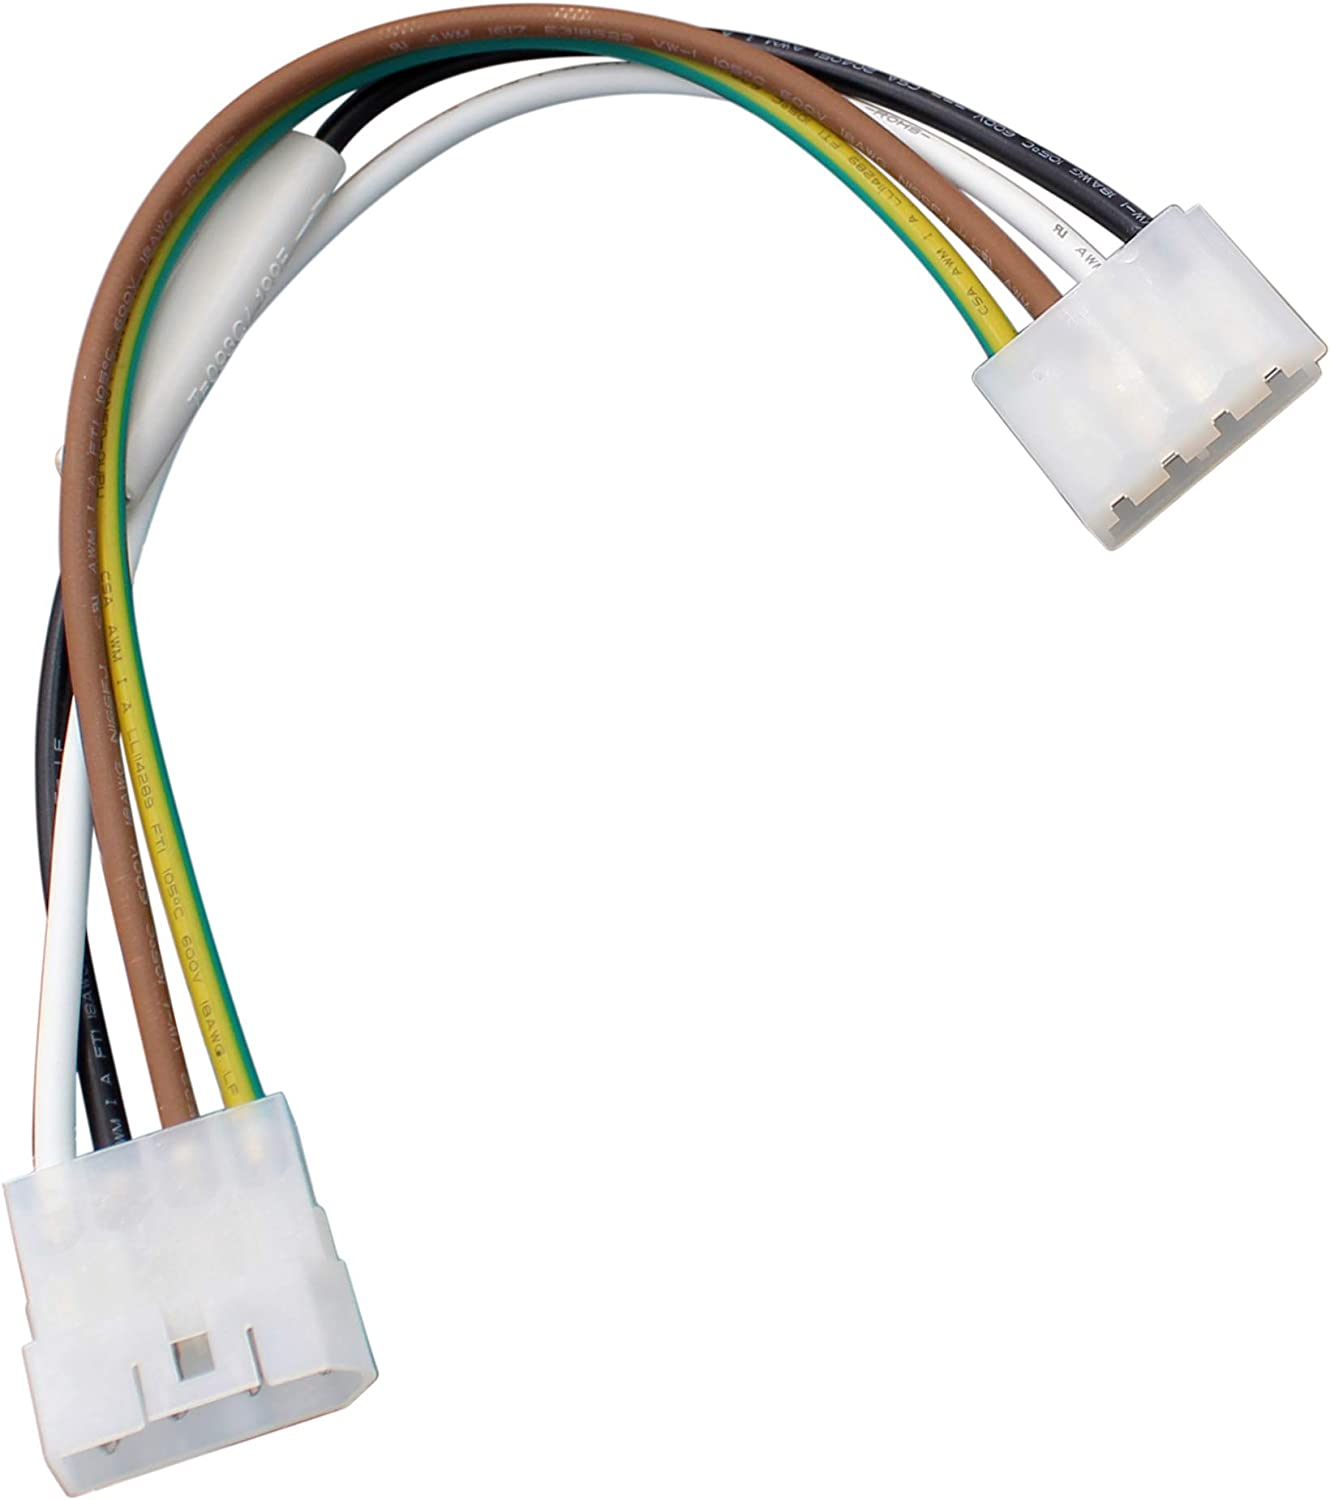 [SCHEMATICS_4FD]  Amazon.com: Supplying Demand 2187467 Ice Maker Wire Harness Fits 2187464 &  627840 For 2198597 Icemaker: Home Improvement | Ice Maker Wiring Harness |  | Amazon.com